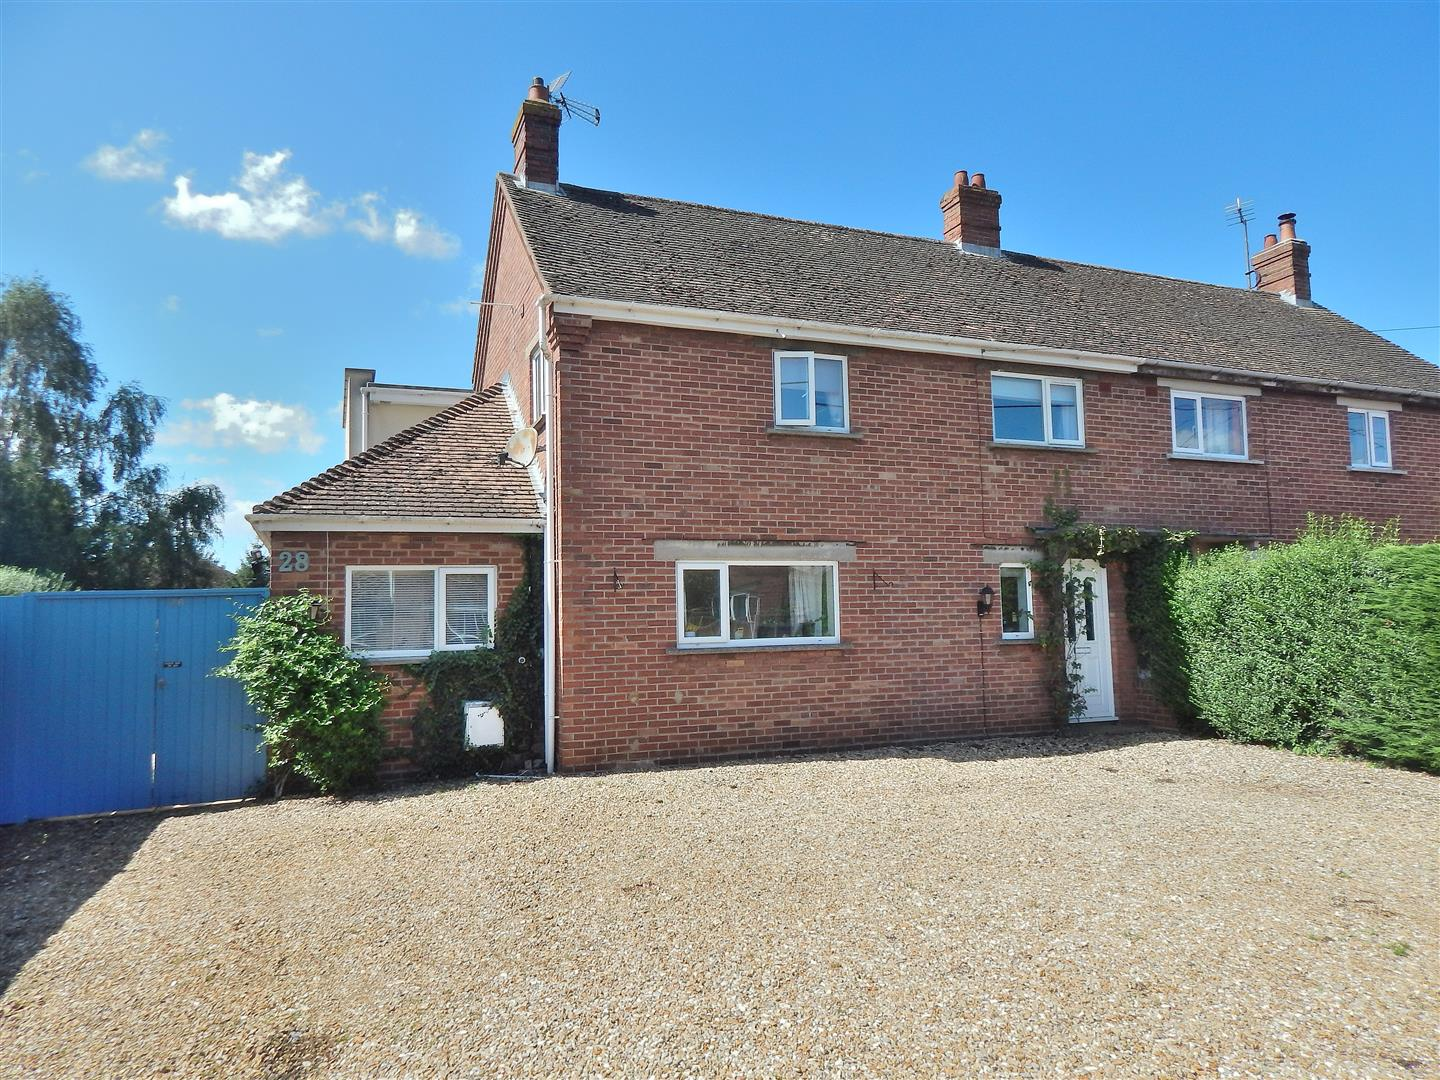 5 bed semi-detached house for sale in King's Lynn, PE31 6HN - Property Image 1